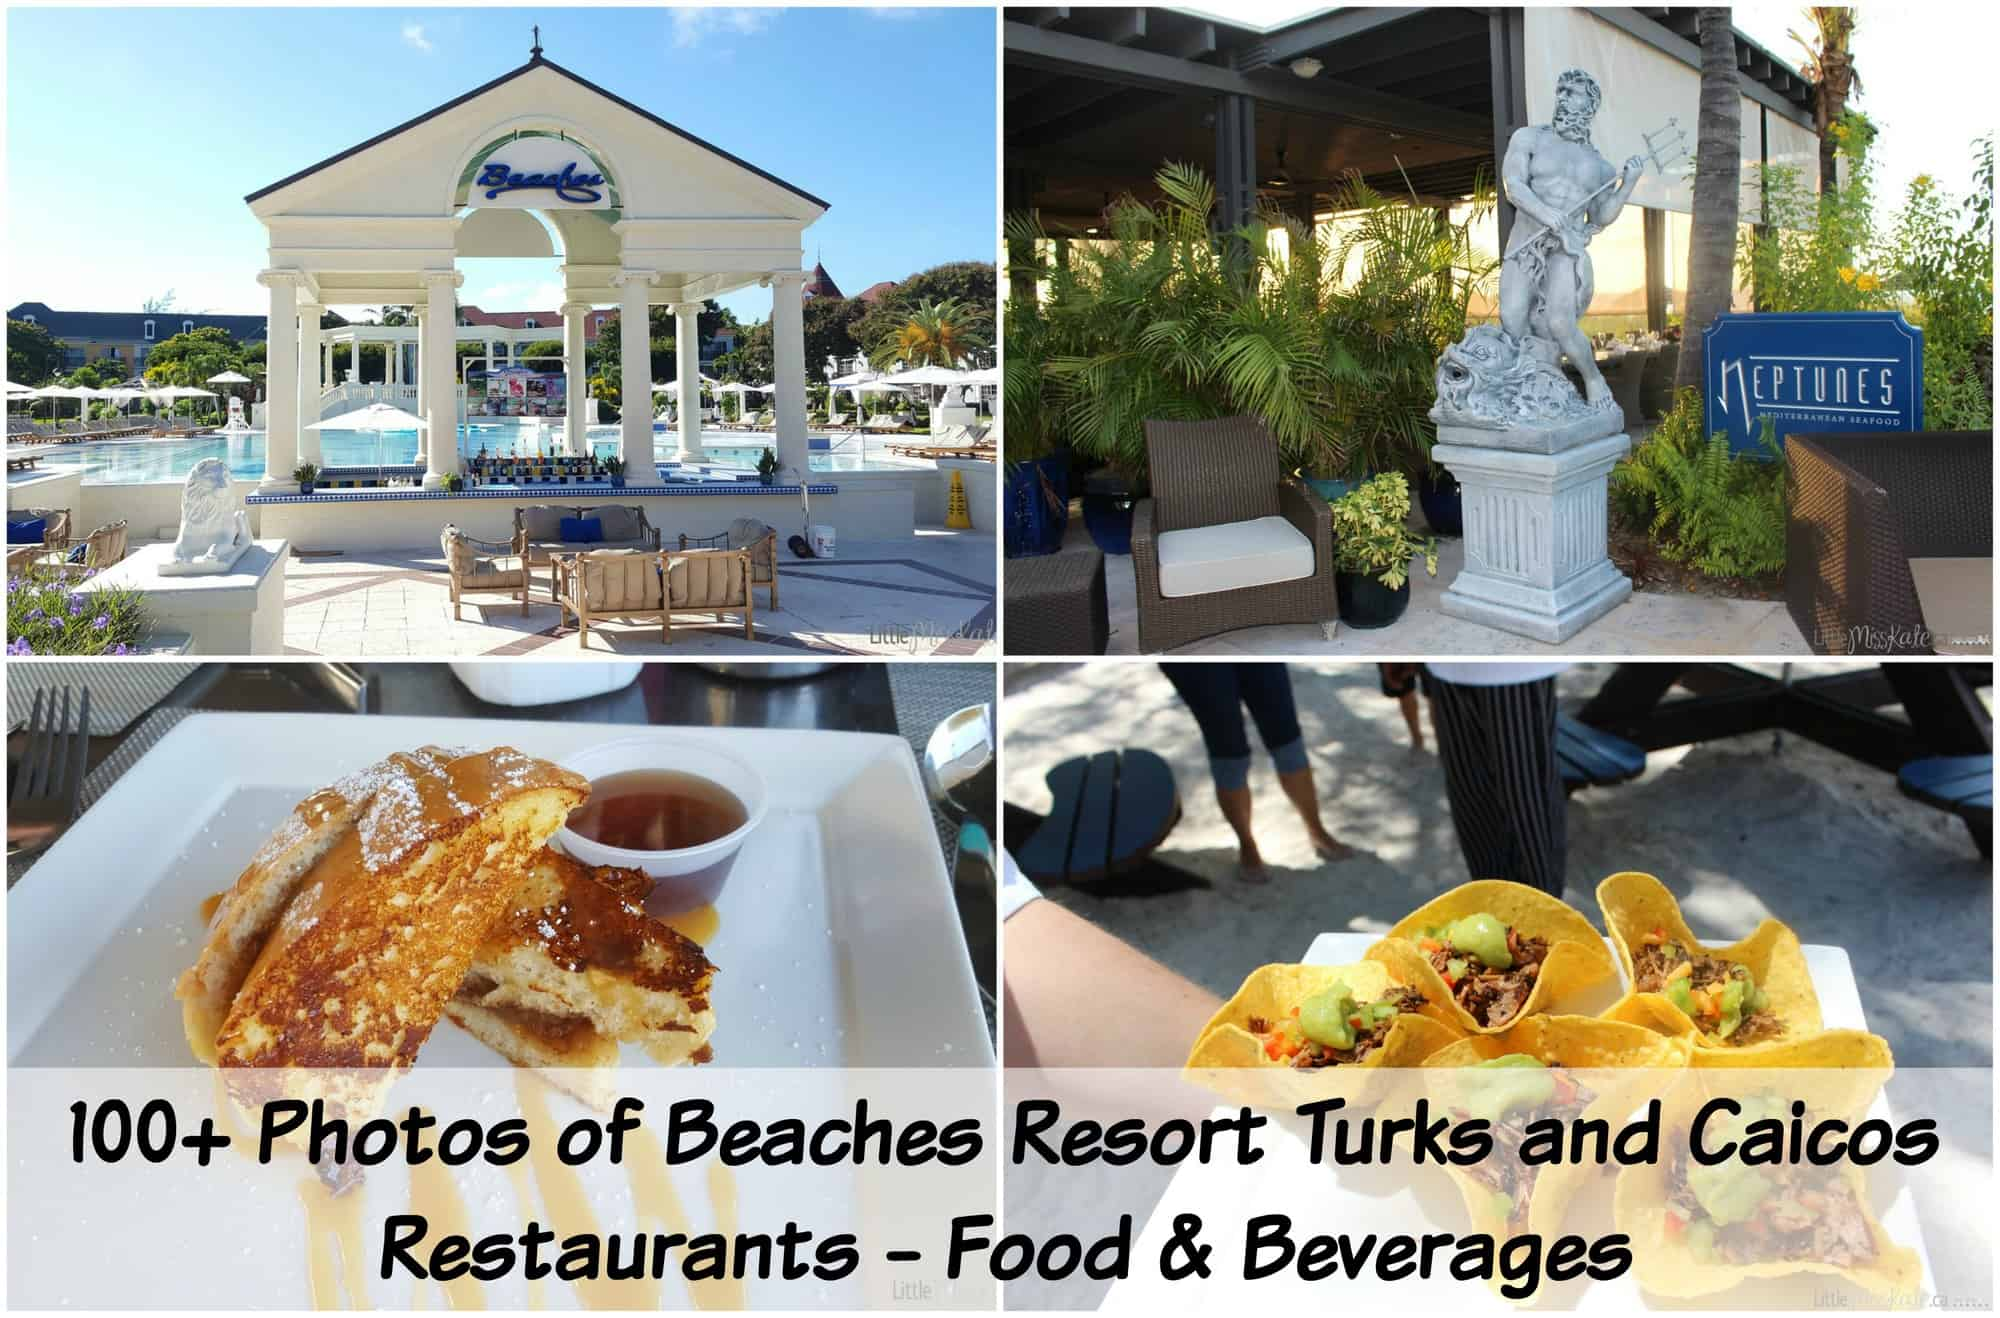 100+ Pictures of Beaches Resort Villages Turks and Caicos – Restaurants, Food, and Beverages